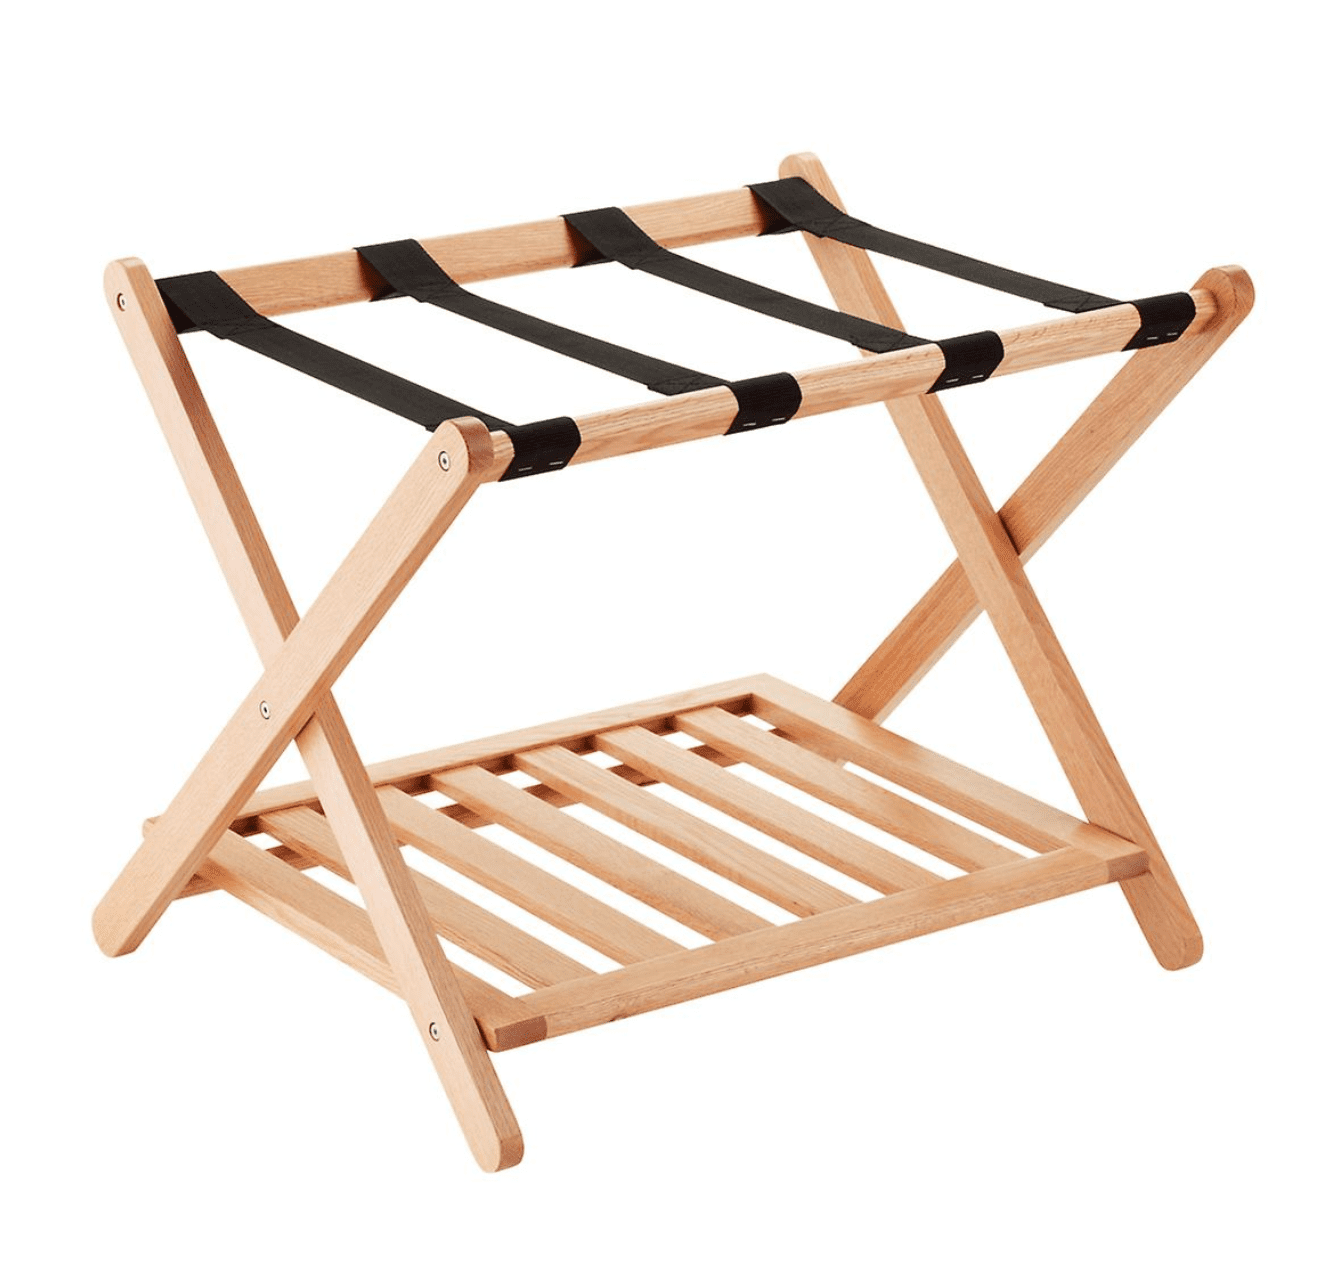 A wooden luggage rack, which is currently for sale at The Container Store